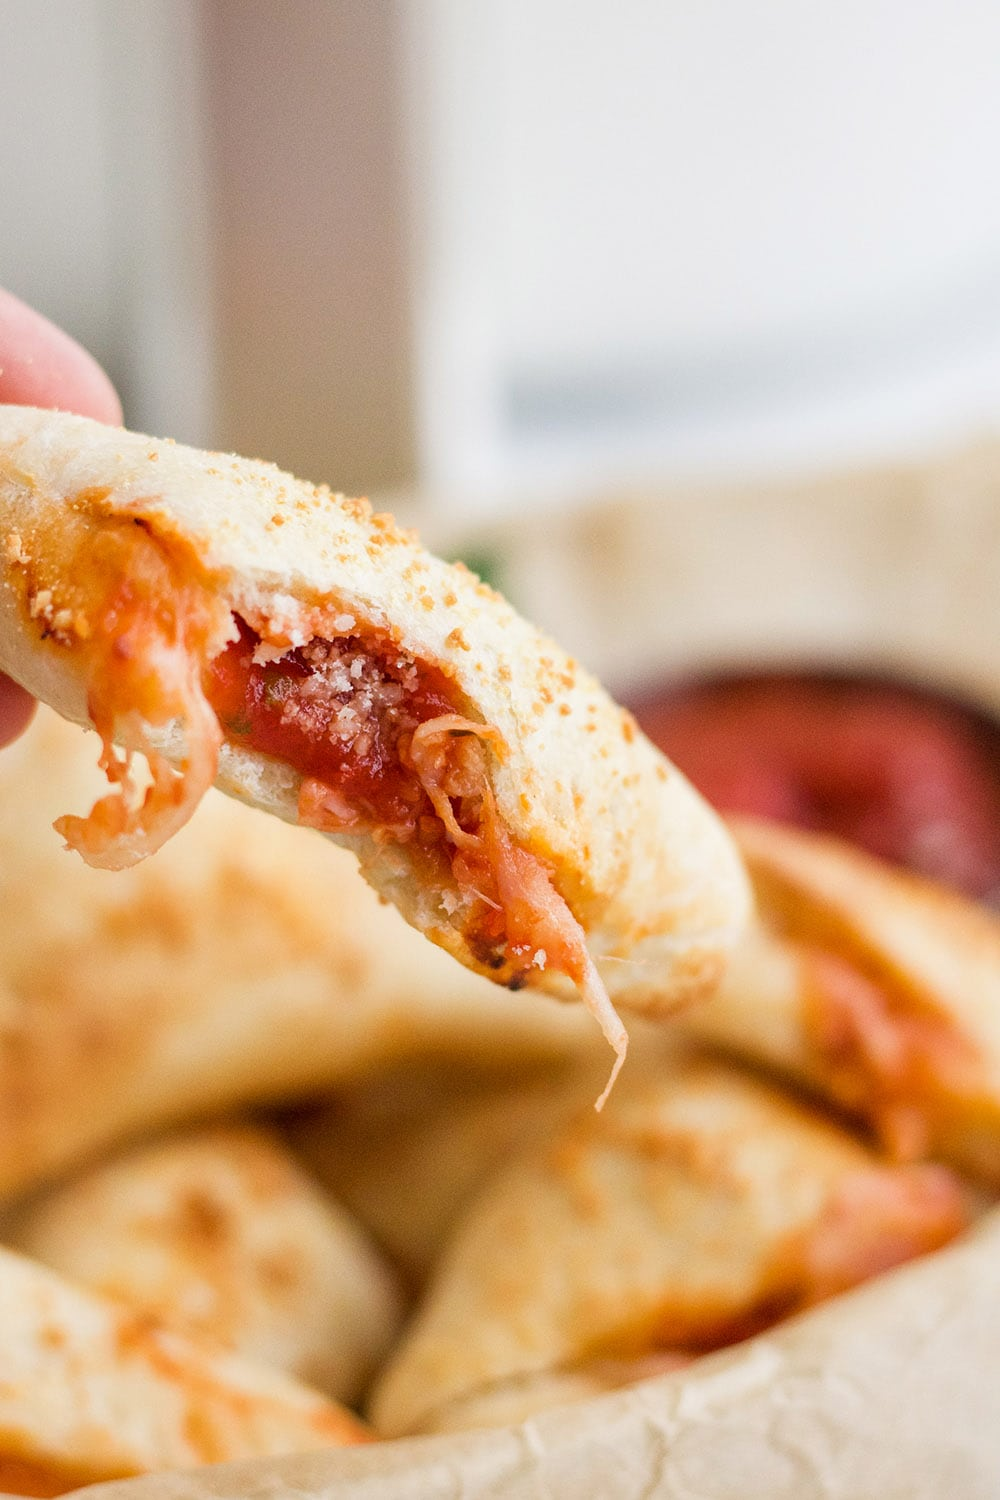 bite out of a pizza roll showing sauce and cheese